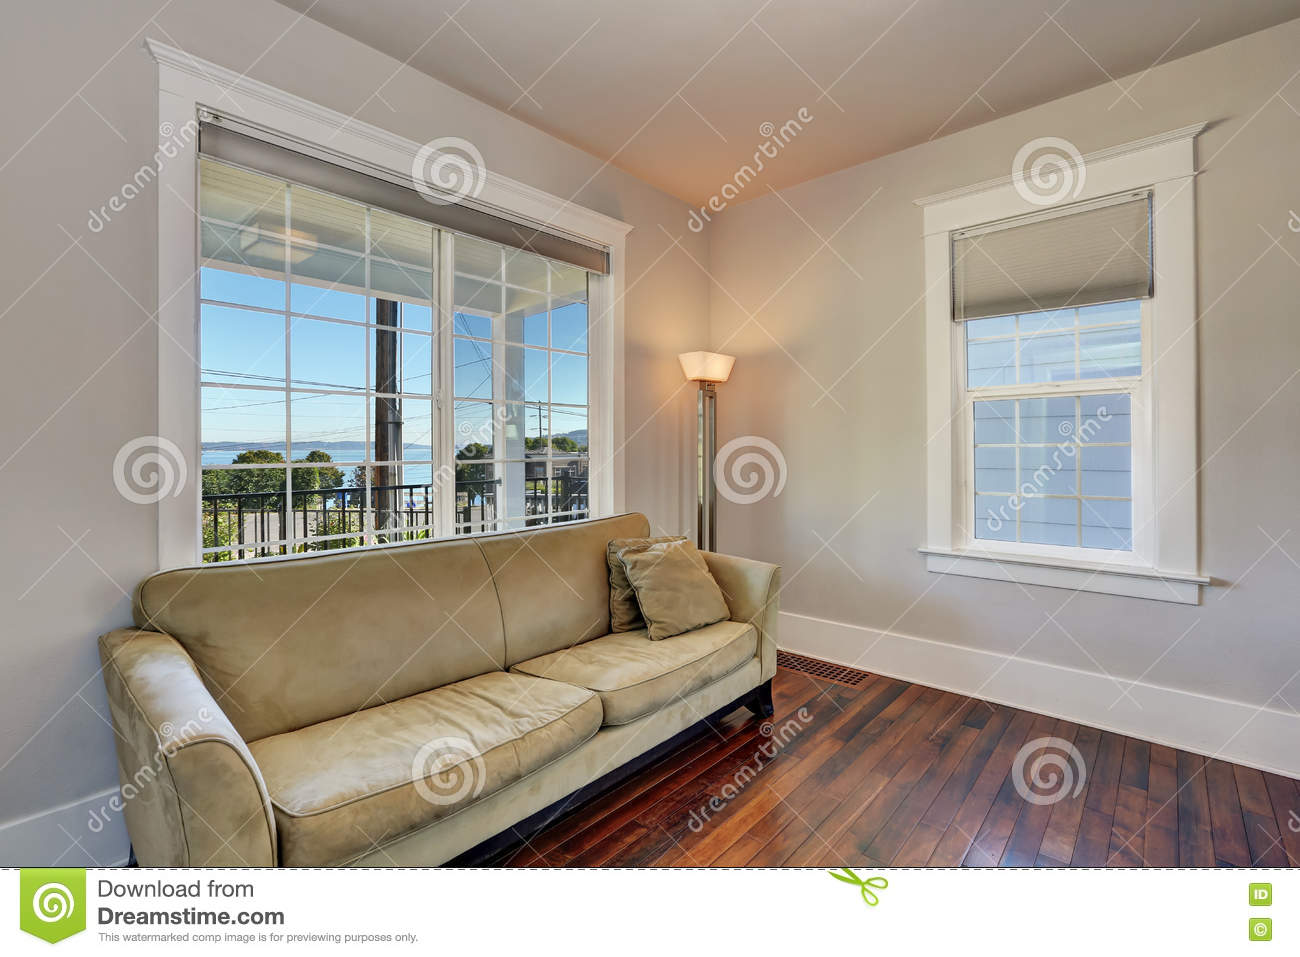 Upstairs living room interior with wood flooring sofa floor lamp and french windows modern house in tacoma northwest usa